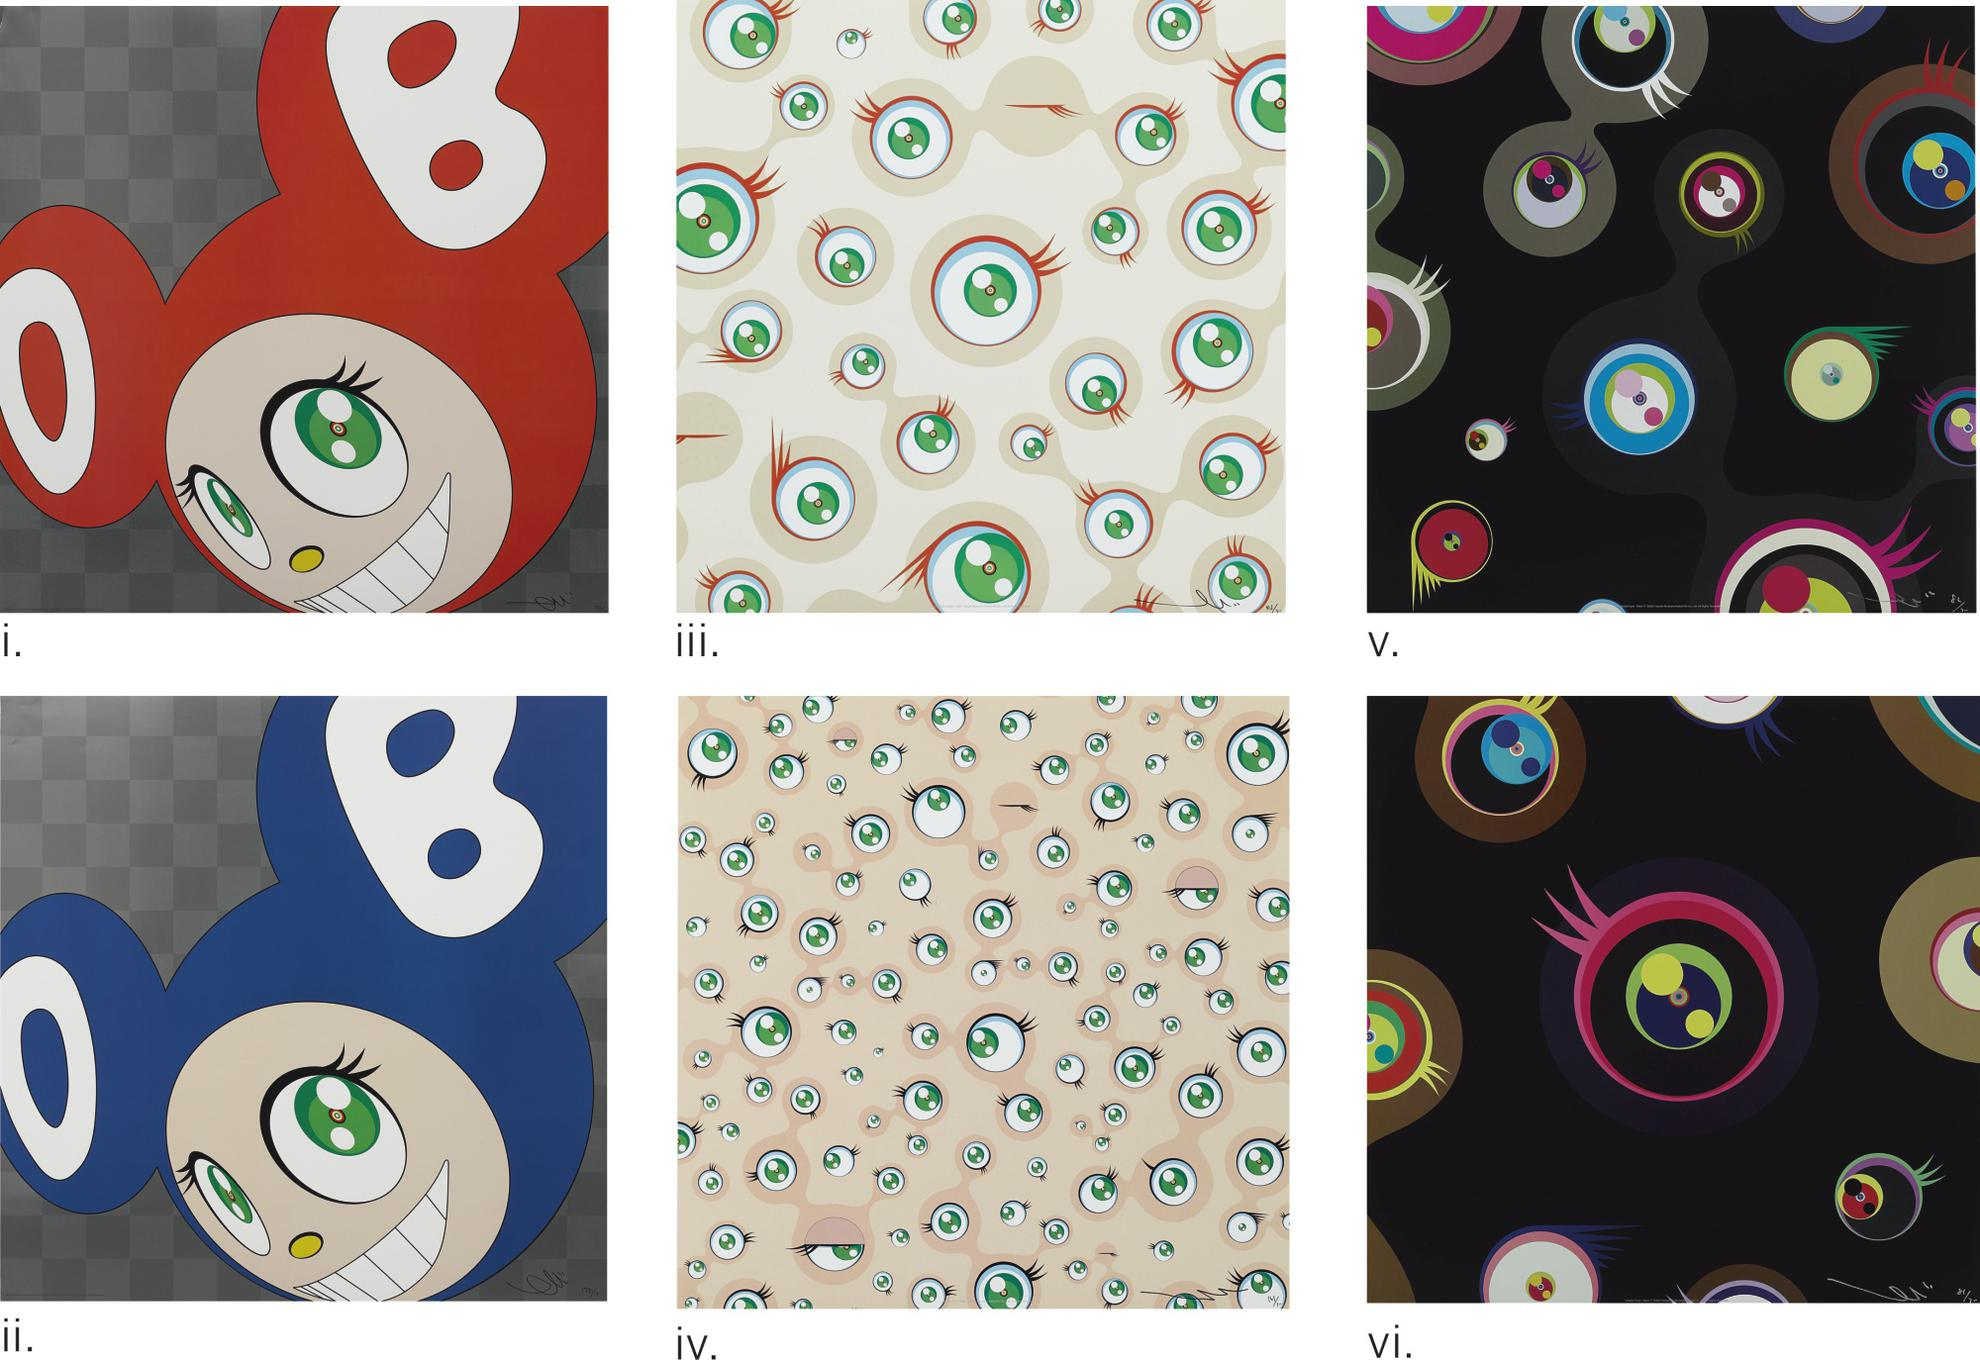 Takashi Murakami-(i) And Then And Then And Then And Then And Then (Red) (ii) And Then And Then And Then And Then And Then (Blue) (iii) Jellyfish Eyes Cream; (iv) Jellyfish Eyes (v) Jellyfish Eyes - Black 2 (vi) Jellyfish Eyes - Black 1 (6 Works)-1999